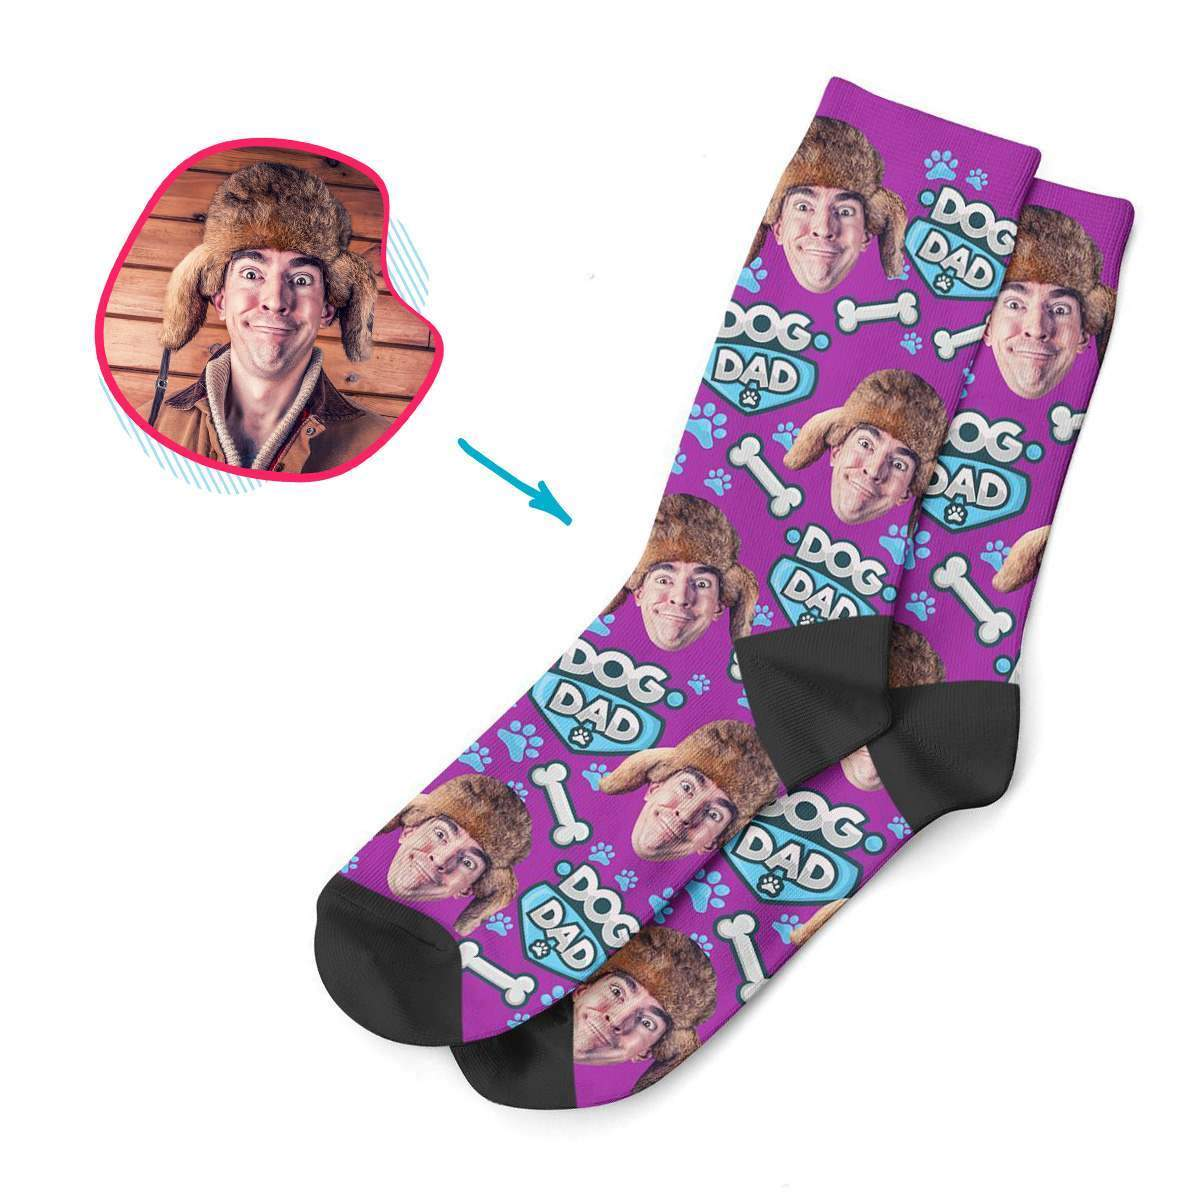 purple Dog Dad socks personalized with photo of face printed on them